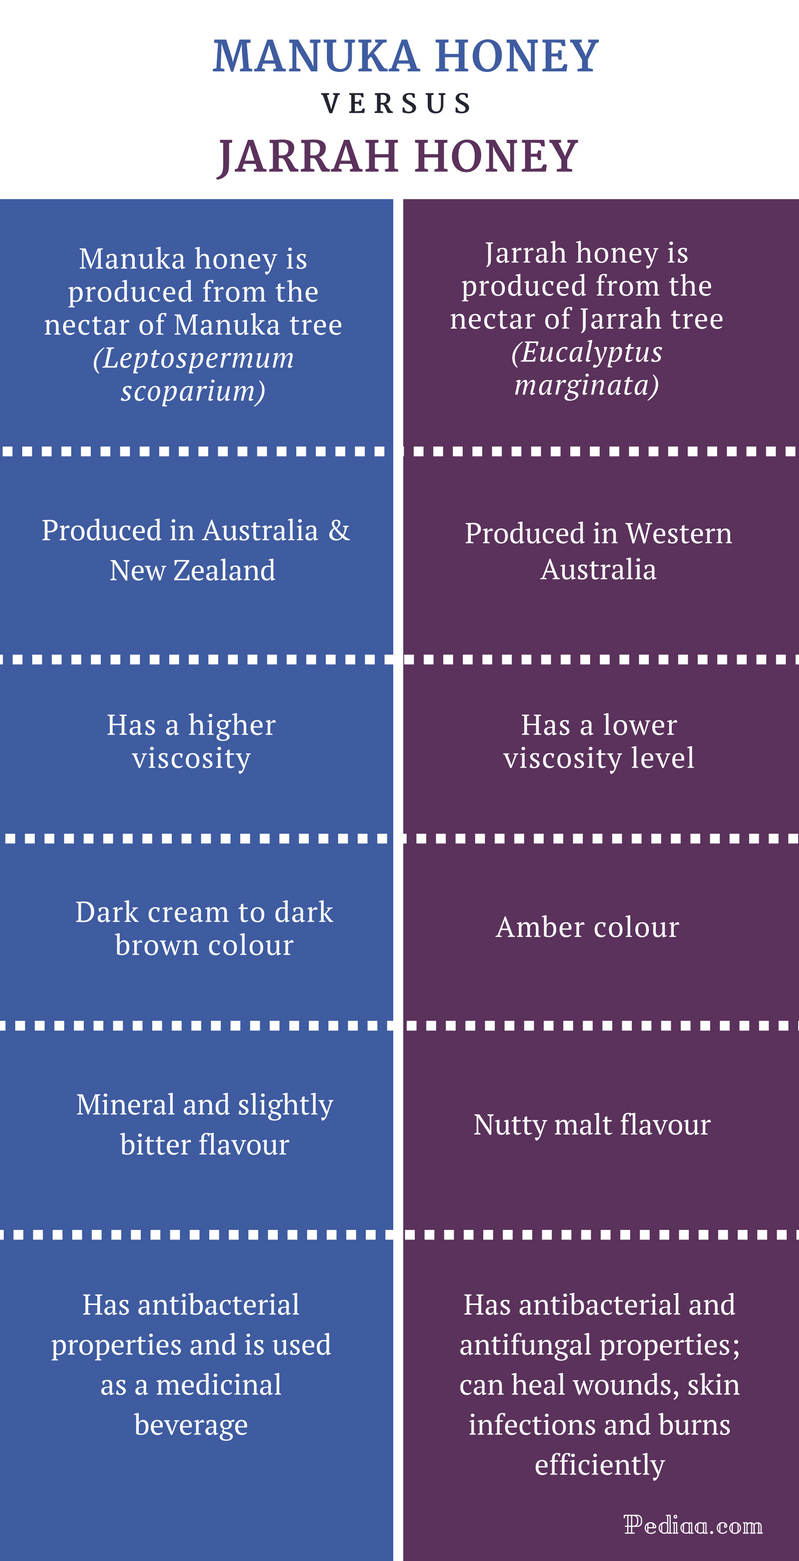 Difference Between Manuka and Jarrah Honey - Comparison Summary